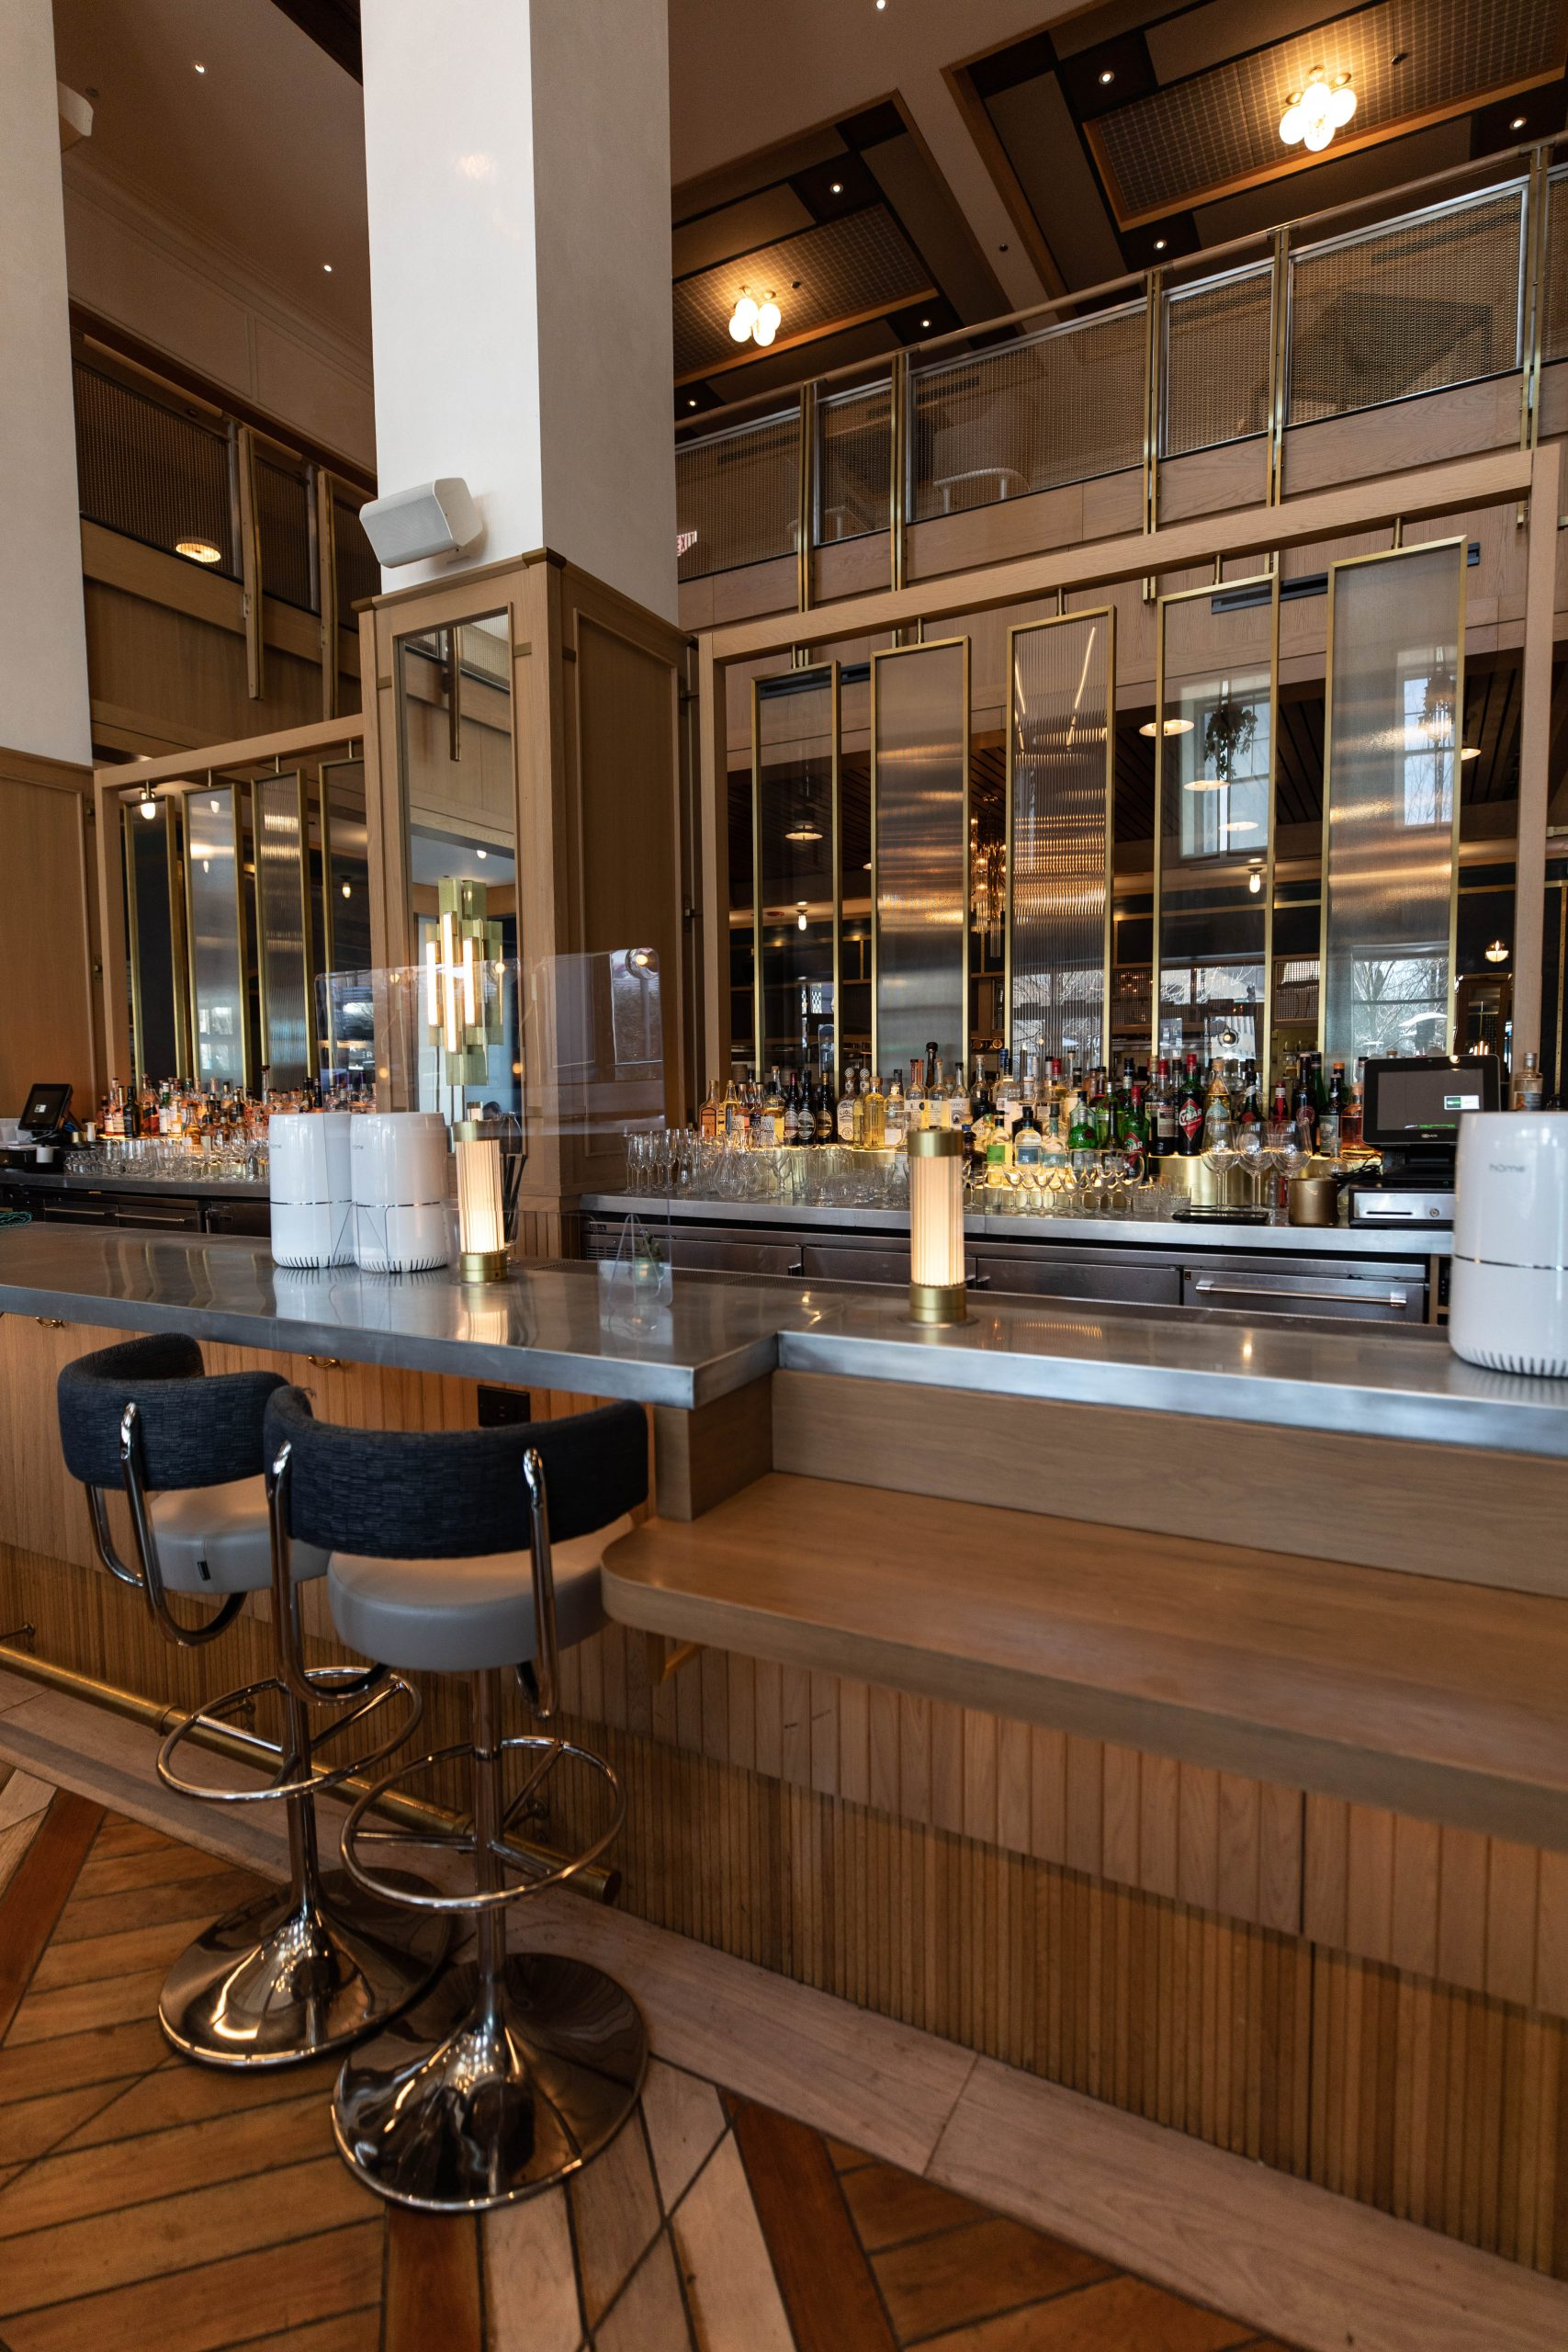 Somerset Restaurant Inside Viceroy Chicago 5-Star Luxury Hotel in Historic Gold Coast District Illinois Midwest Luxury Hotels by Annie Fairfax Where to Stay in Chicago